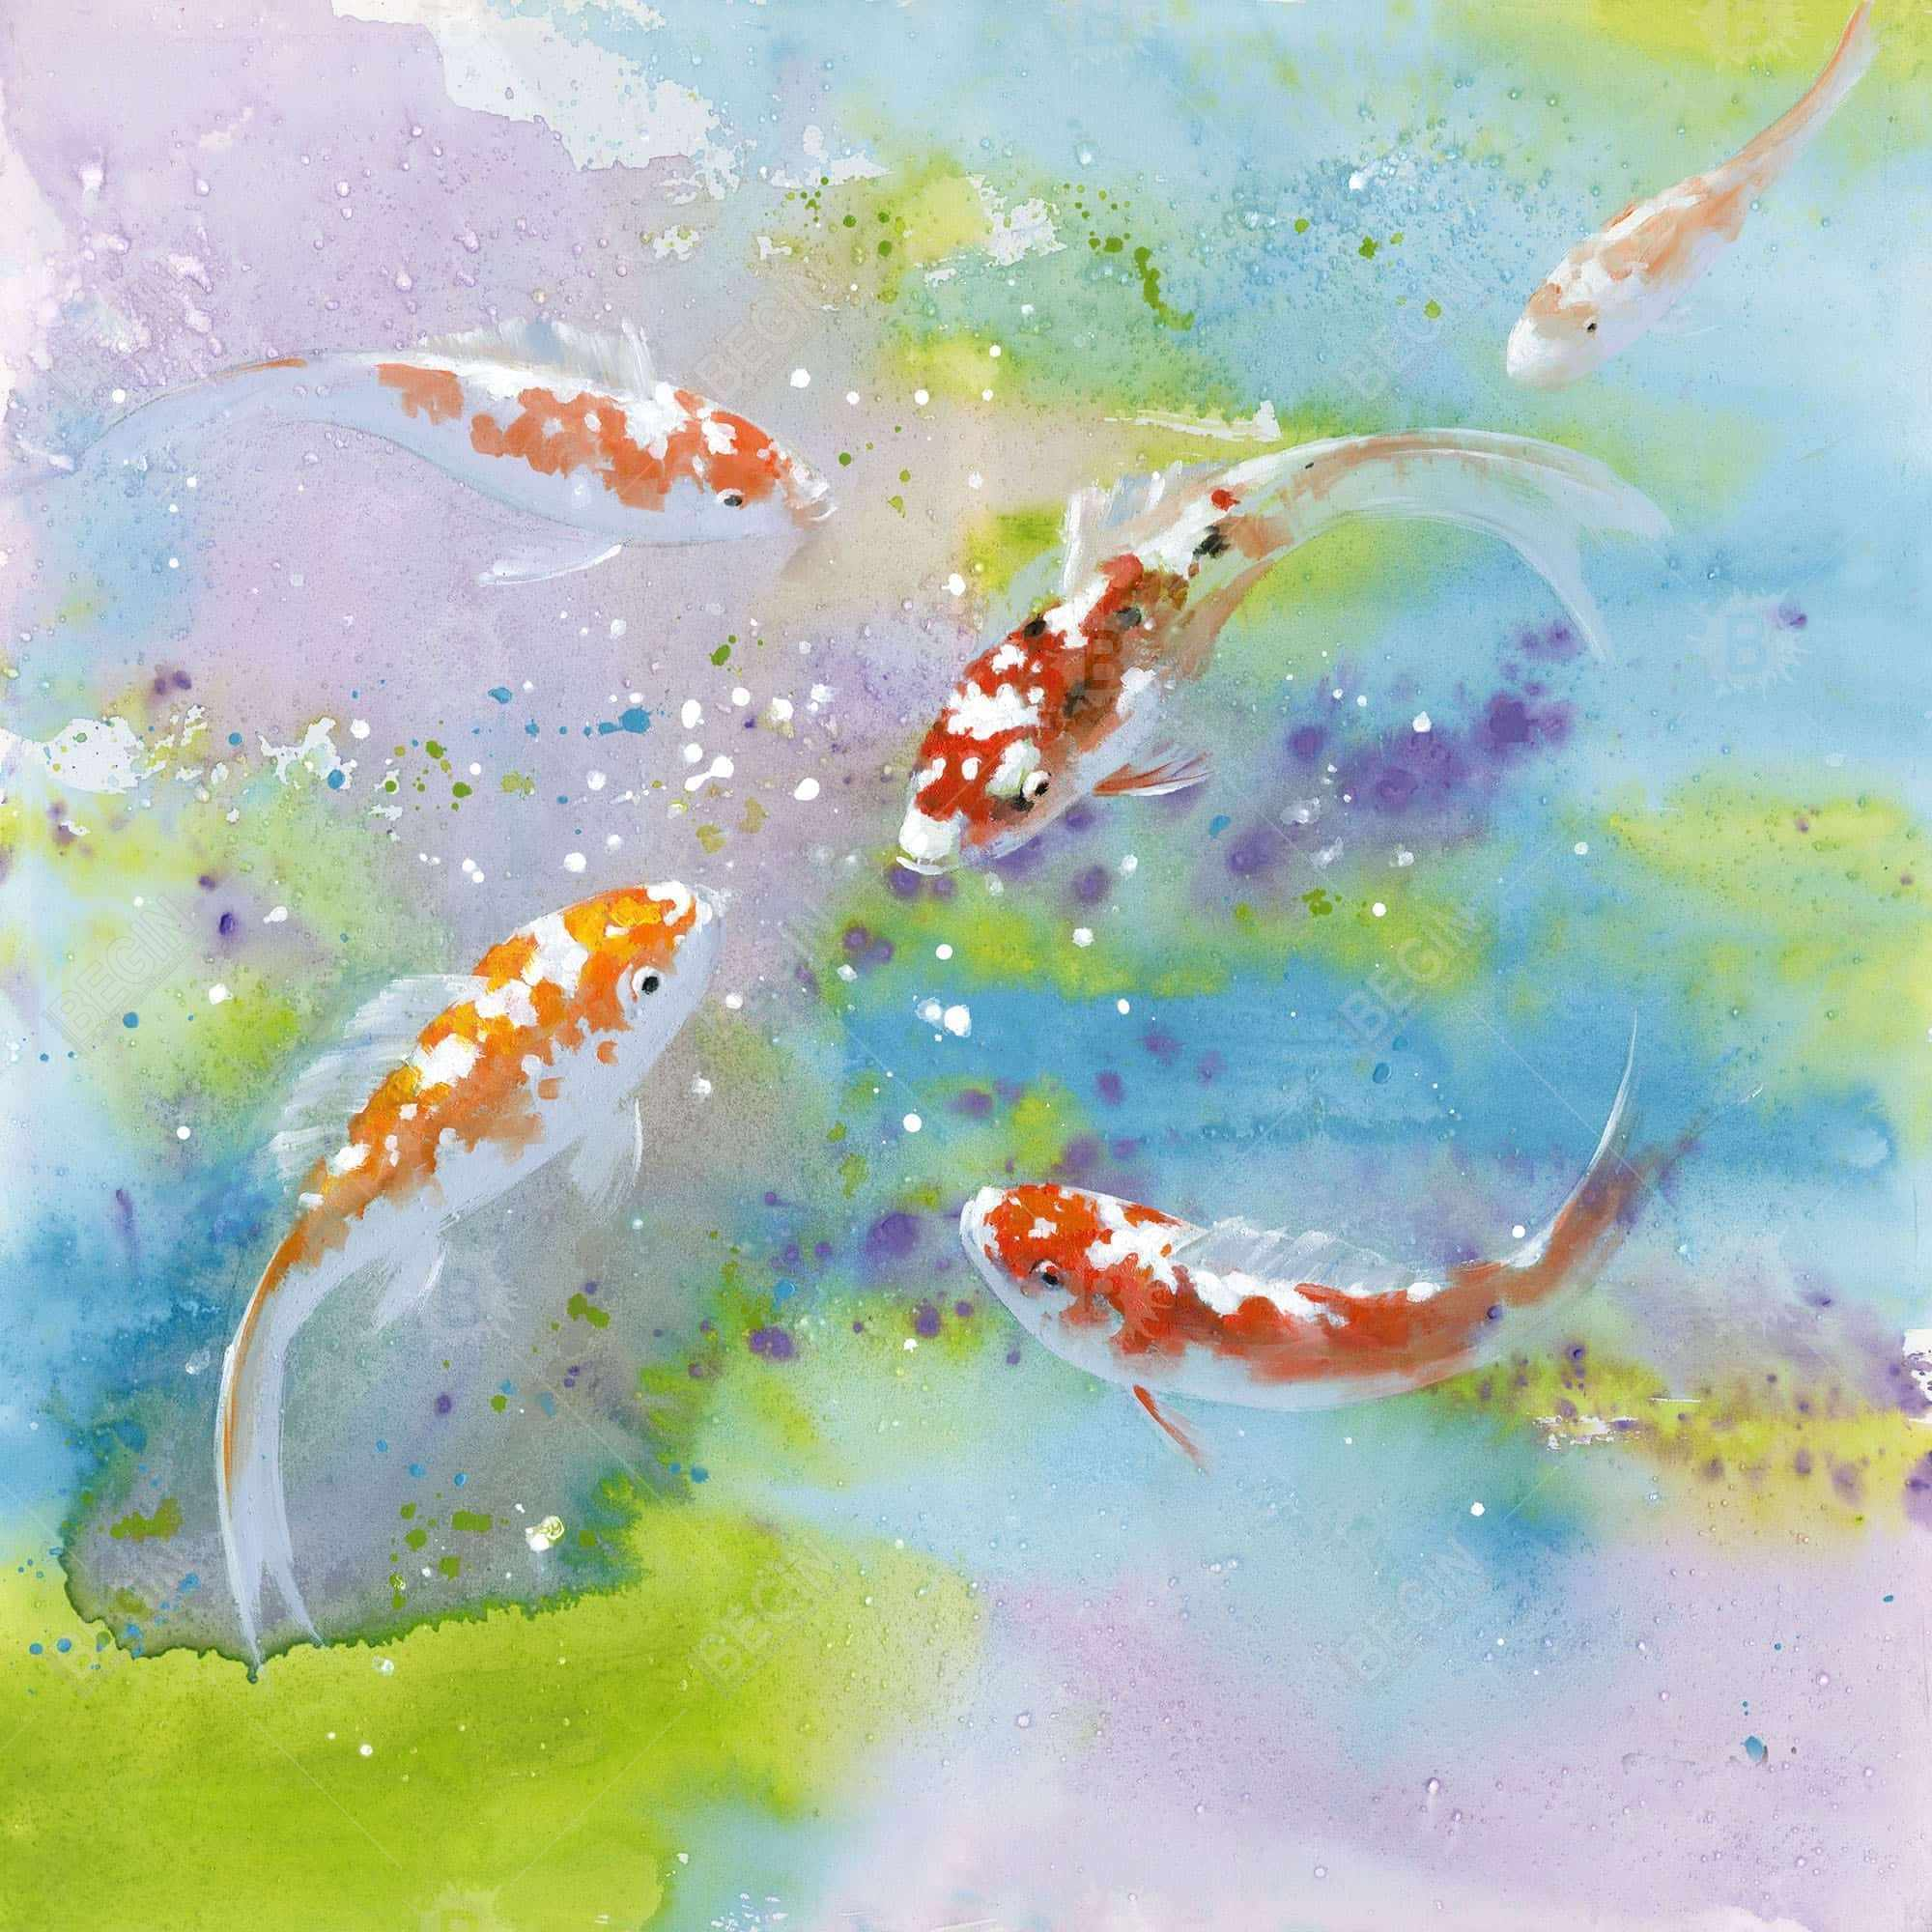 Four koi fish swimming